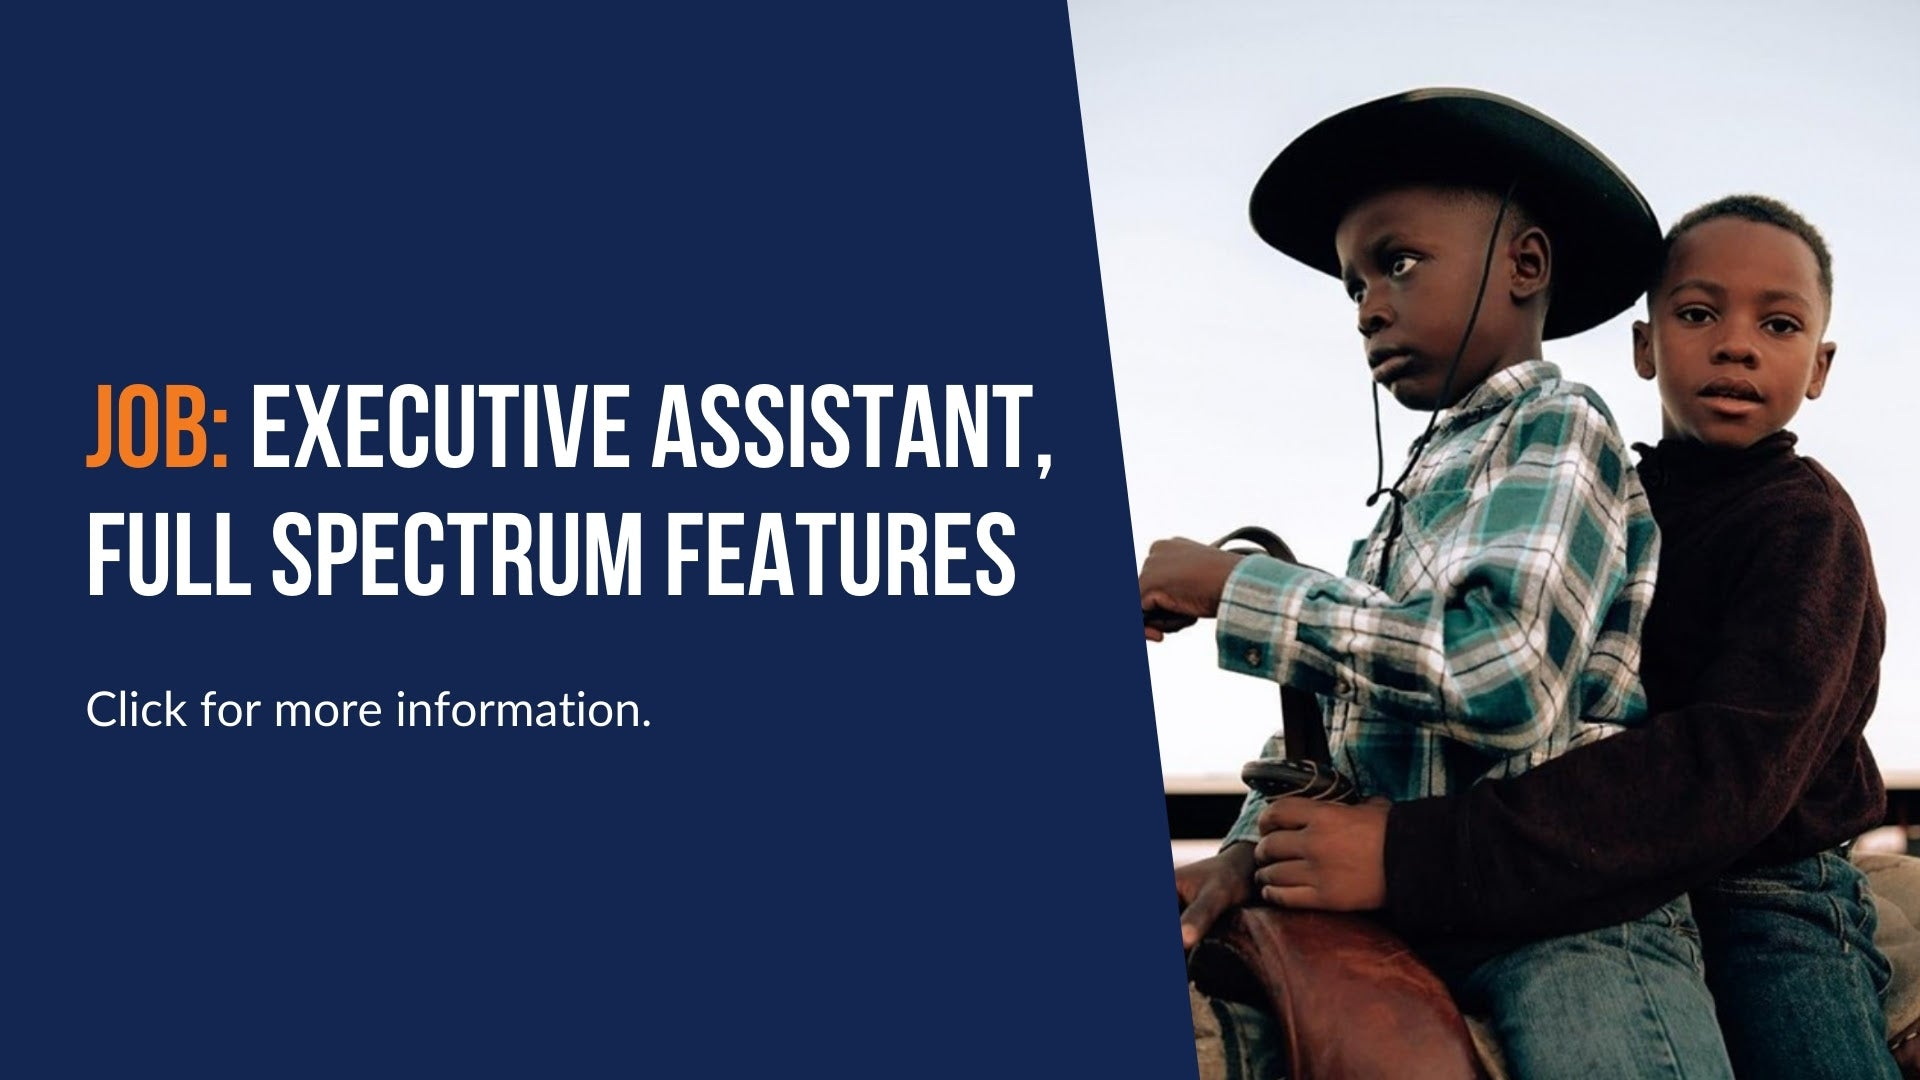 Job: Executive Assistant, Full Spectrum Features. Click for more information.